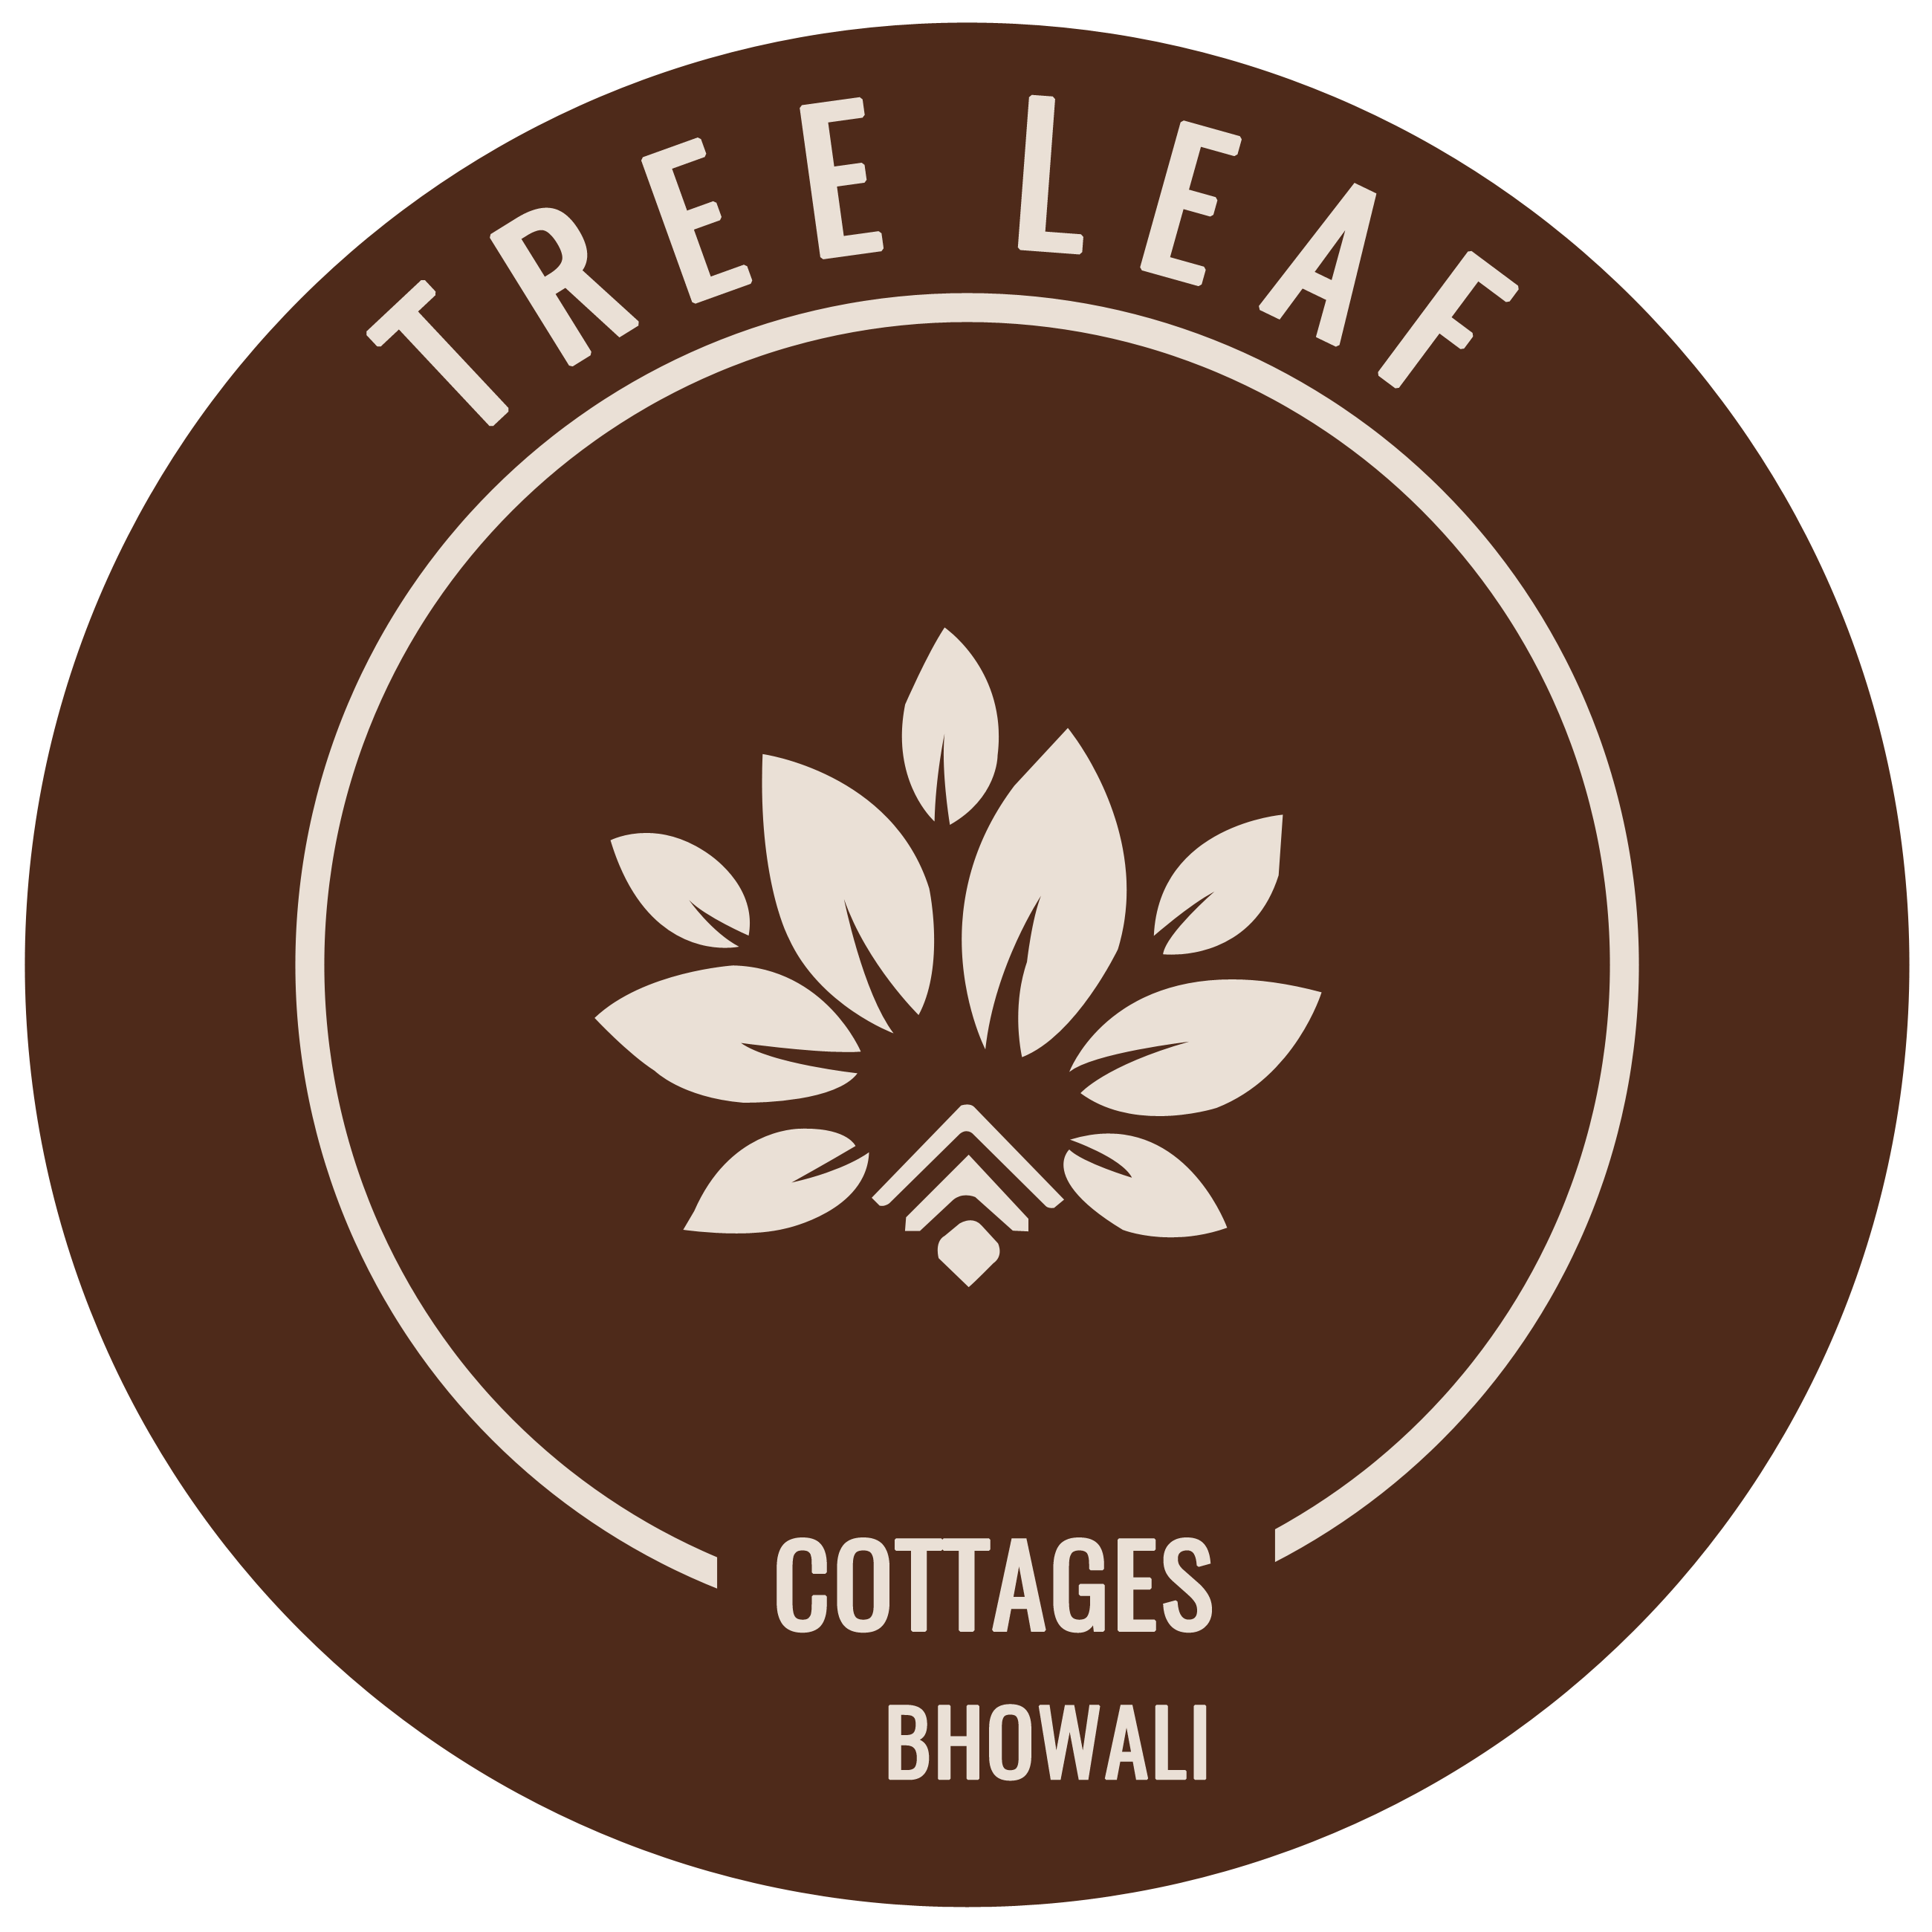 Tree Leaf Hotels | Luxury Cottages in Bhowali, Nainital, Near Mukteshwar